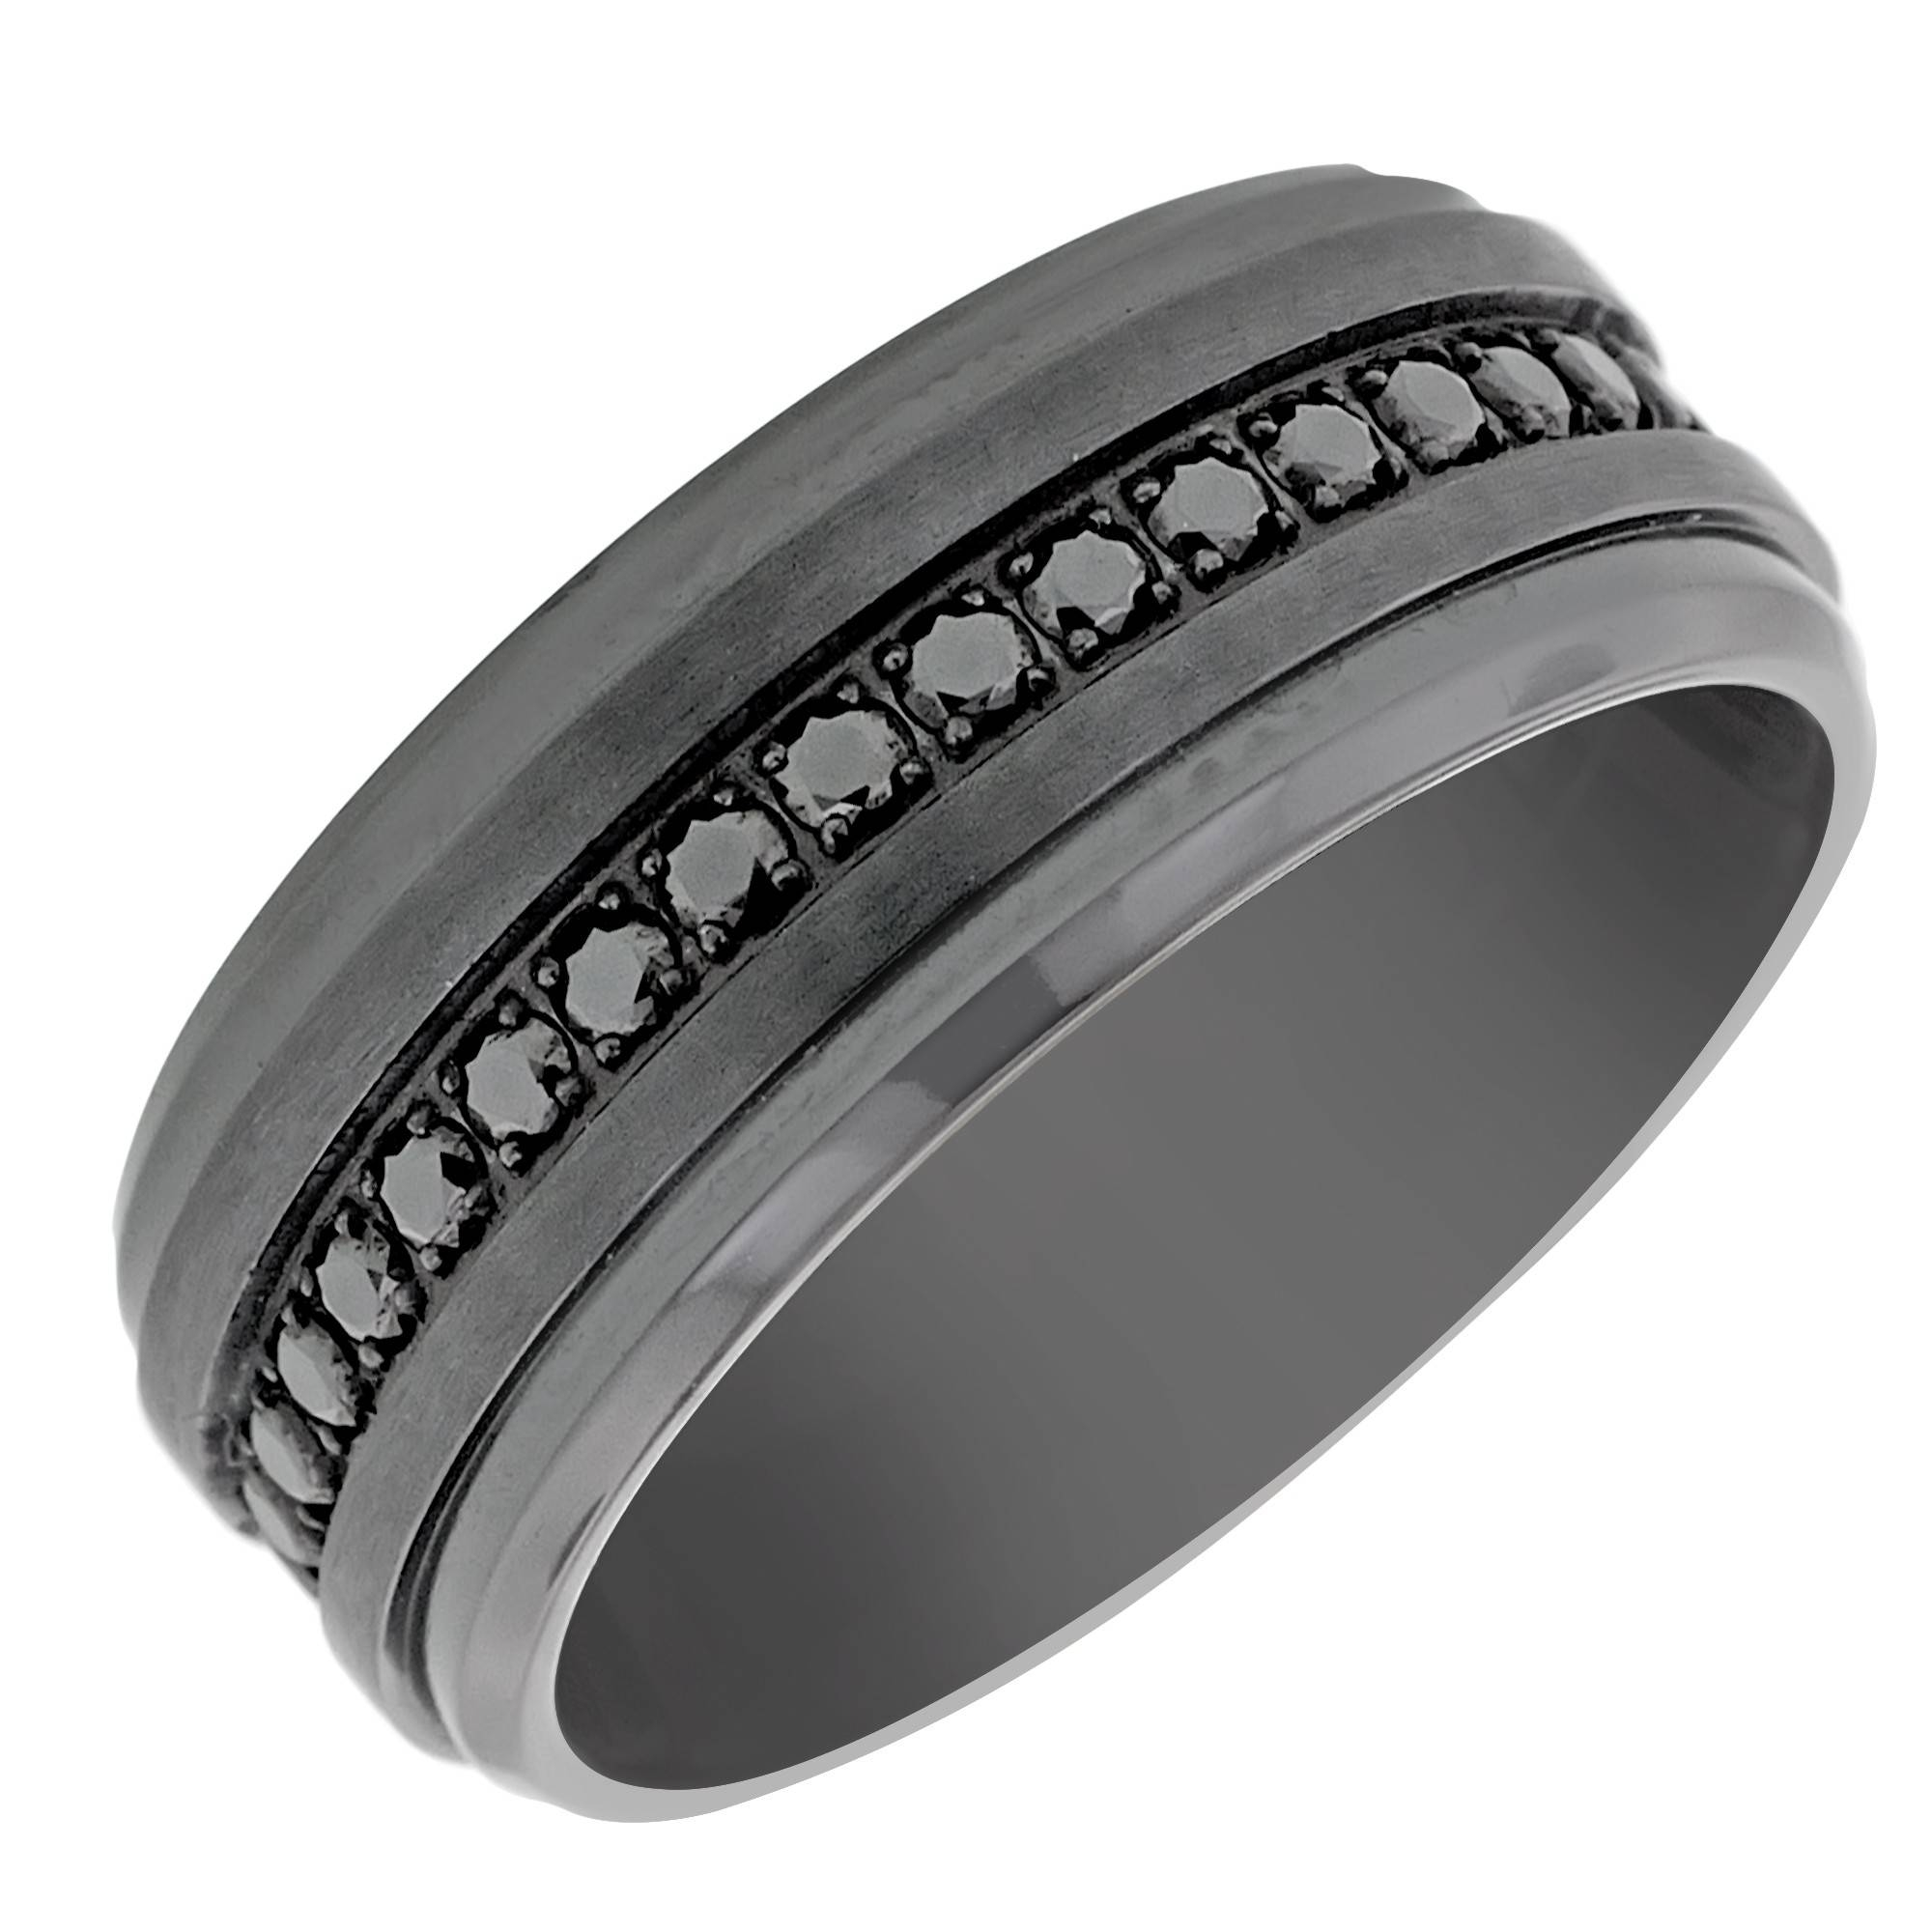 Benchmark Mens Black Cubic Zirconia Wedding Band In Black Titanium Throughout Men's Cubic Zirconia Wedding Bands (View 2 of 15)